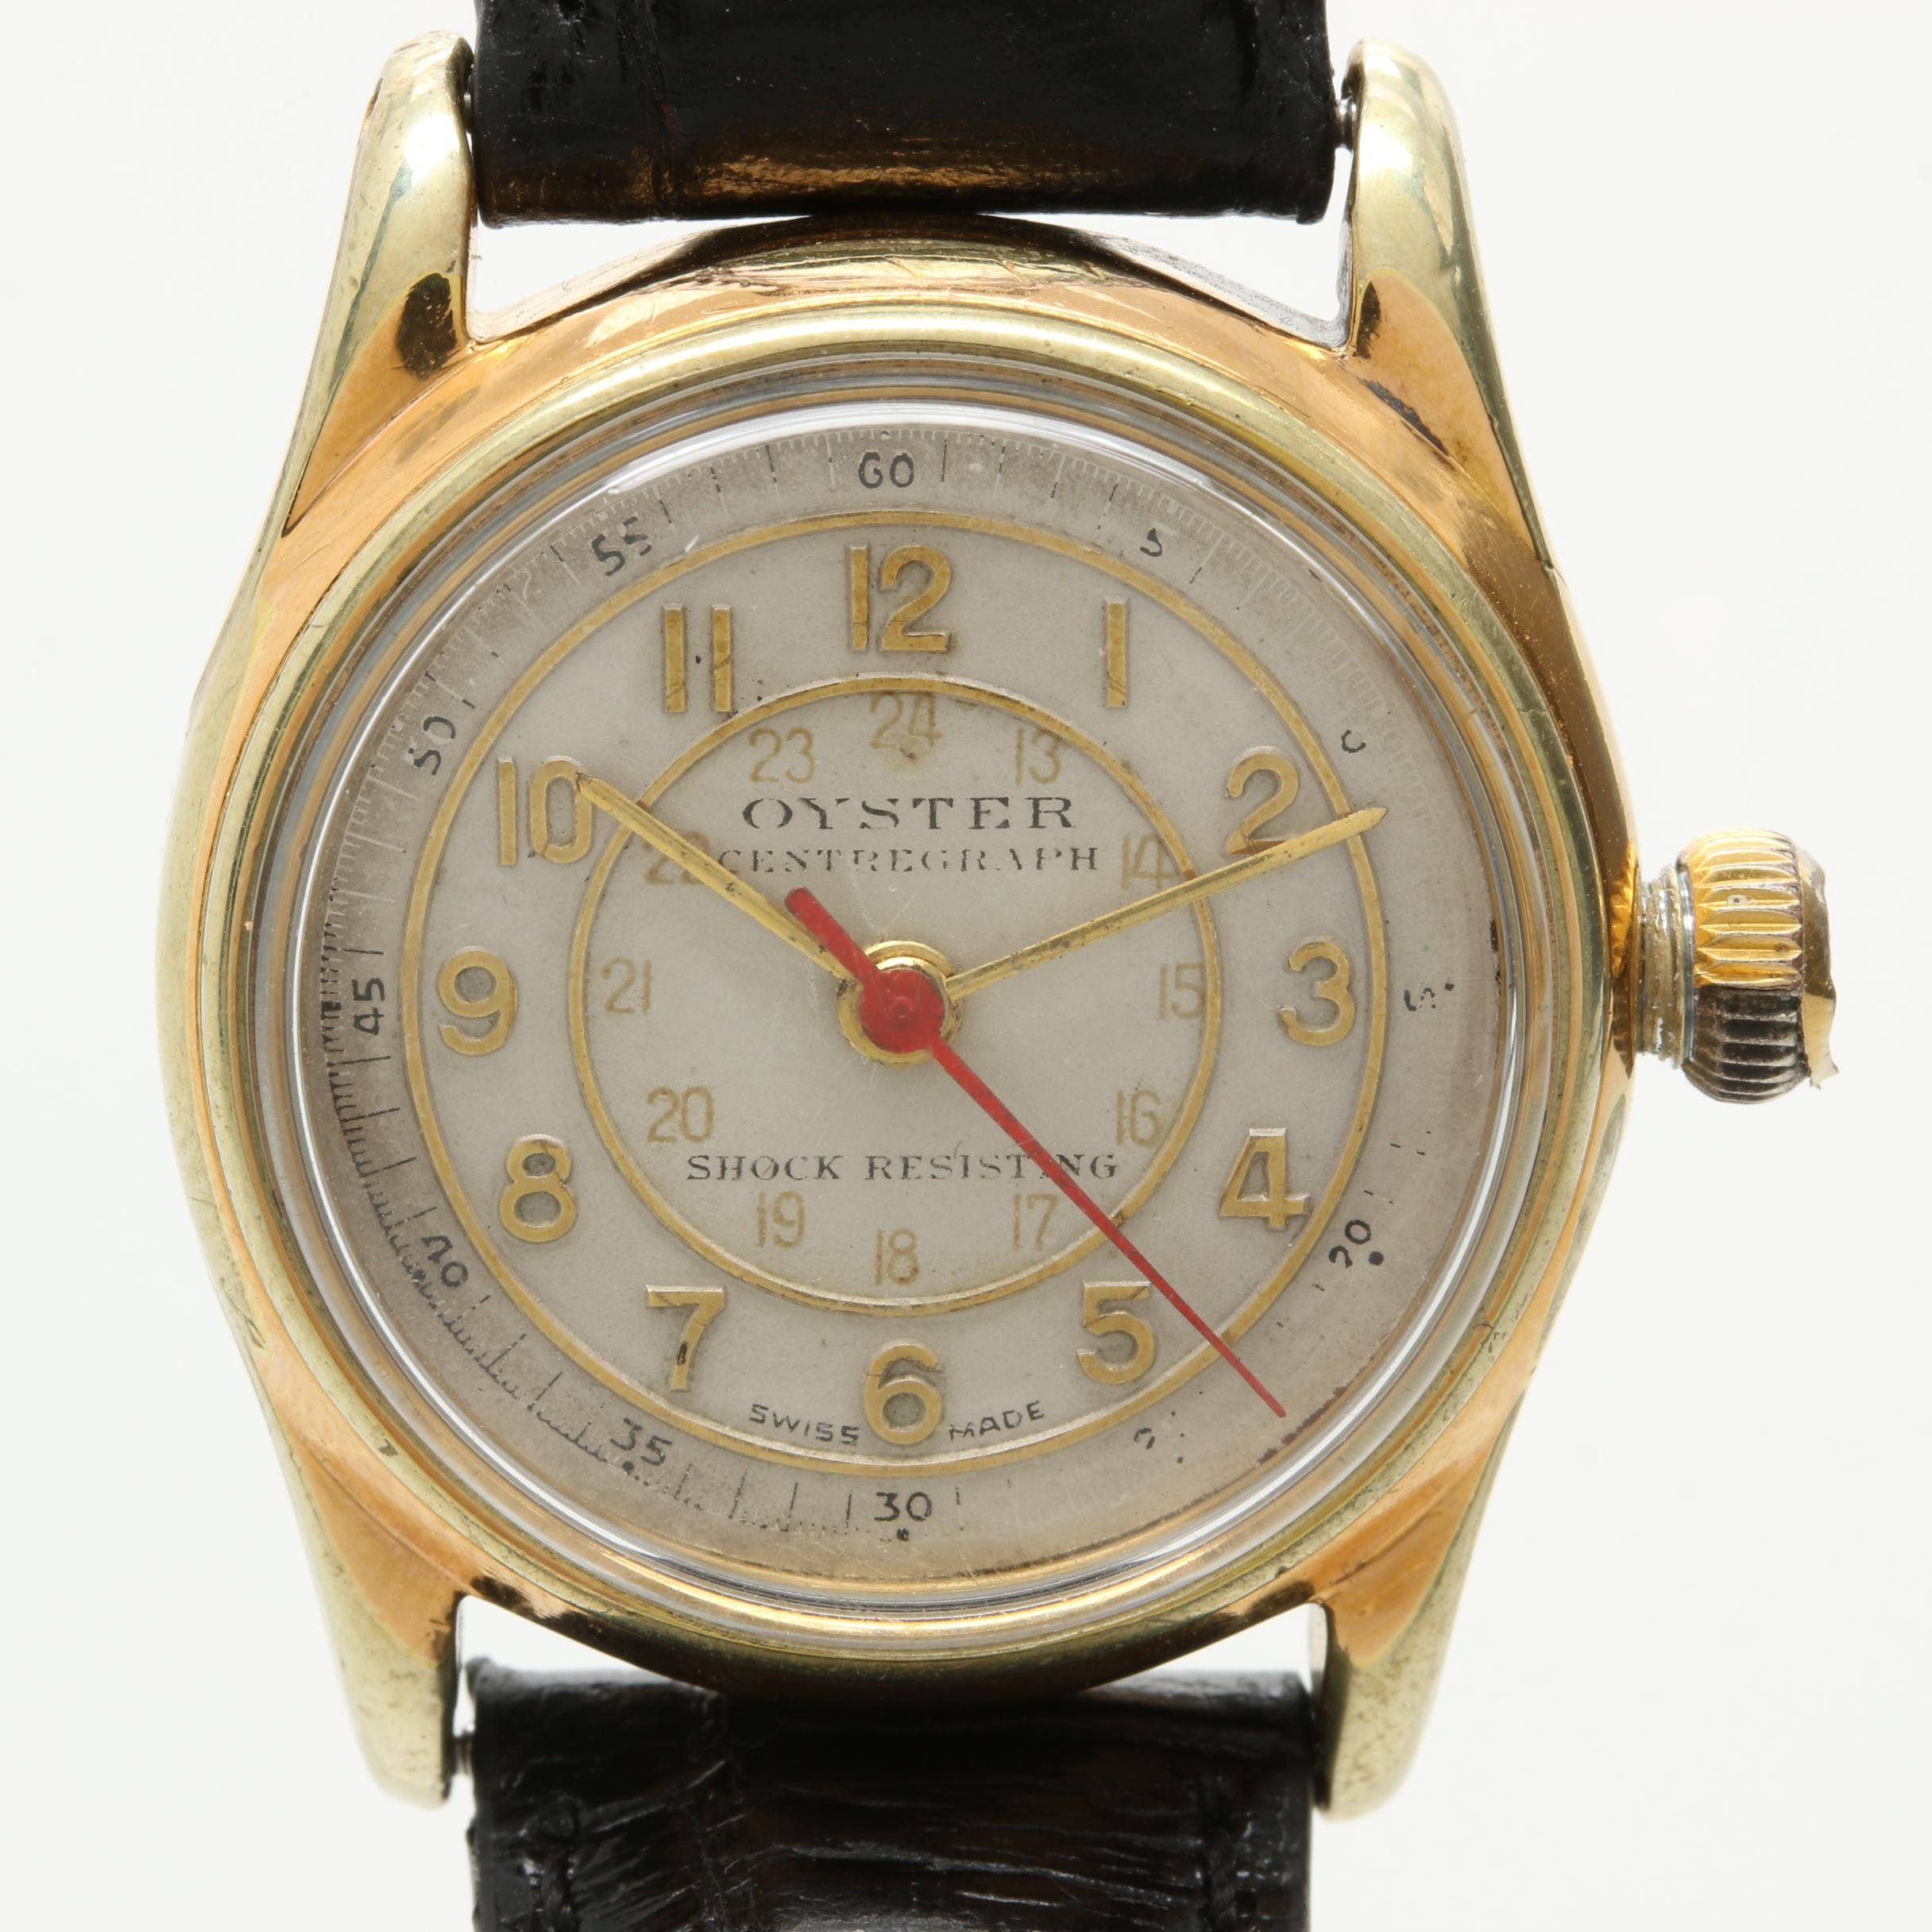 Circa 1940s Rolex Oyster Centregraph Stainless Steel Wristwatch